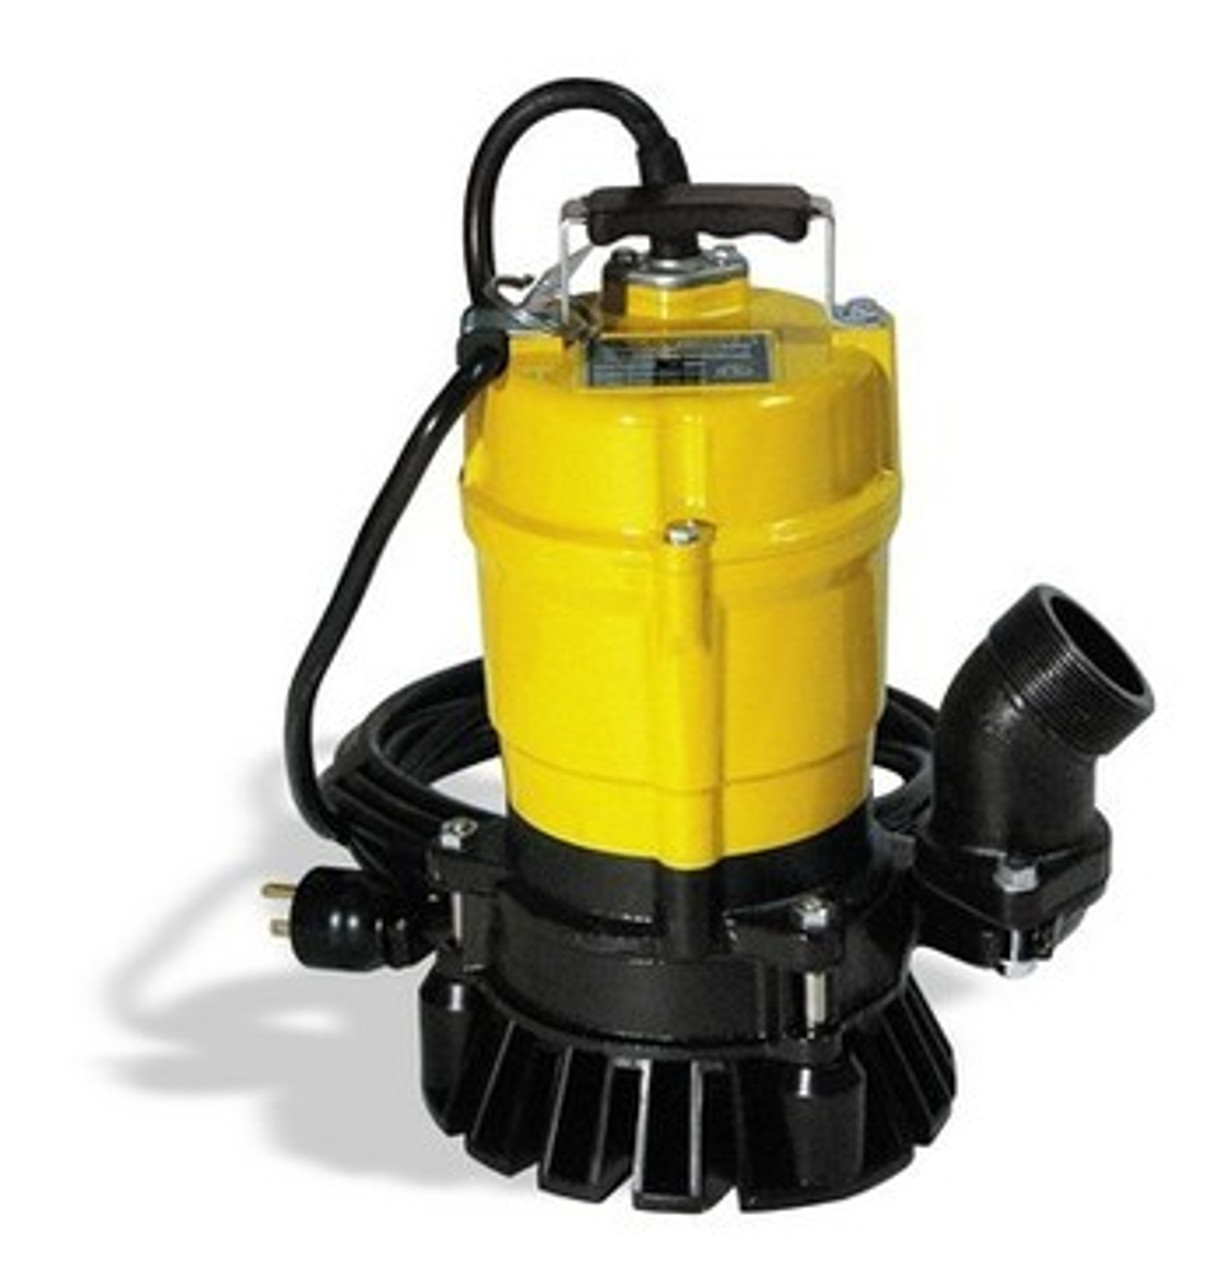 Wacker Neuson 2 inch Single Phase Submersible Pump 1/2 HP 110V/60HZ w/20 ft  Cord PST2 400 0009112